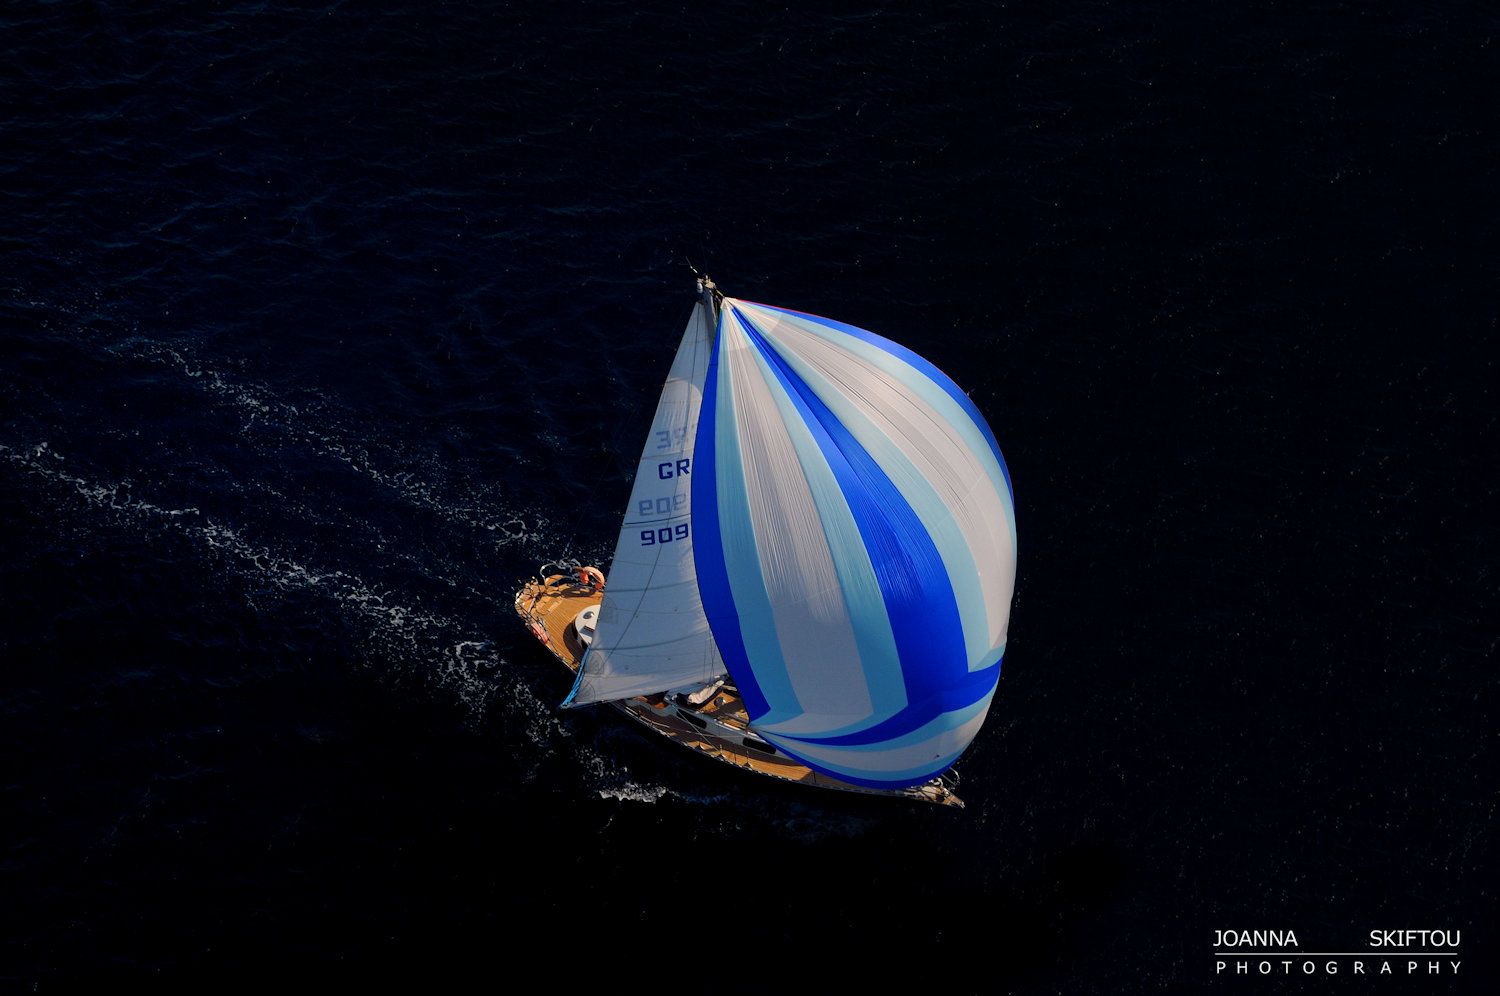 Aerial photography by Joanna Skiftou